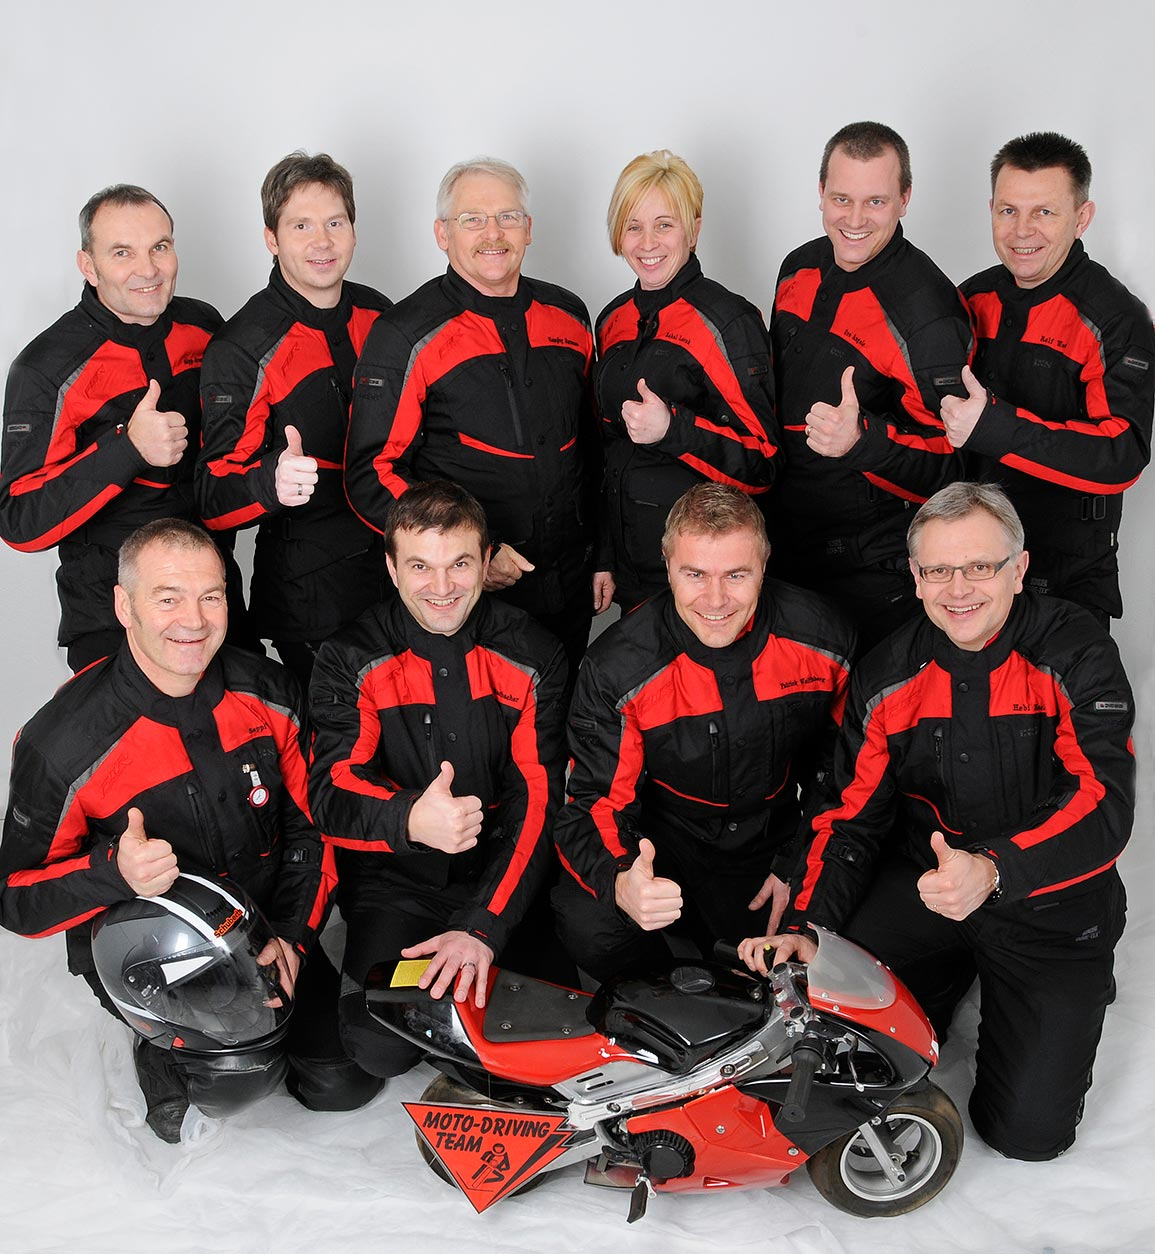 Moto Driving Team